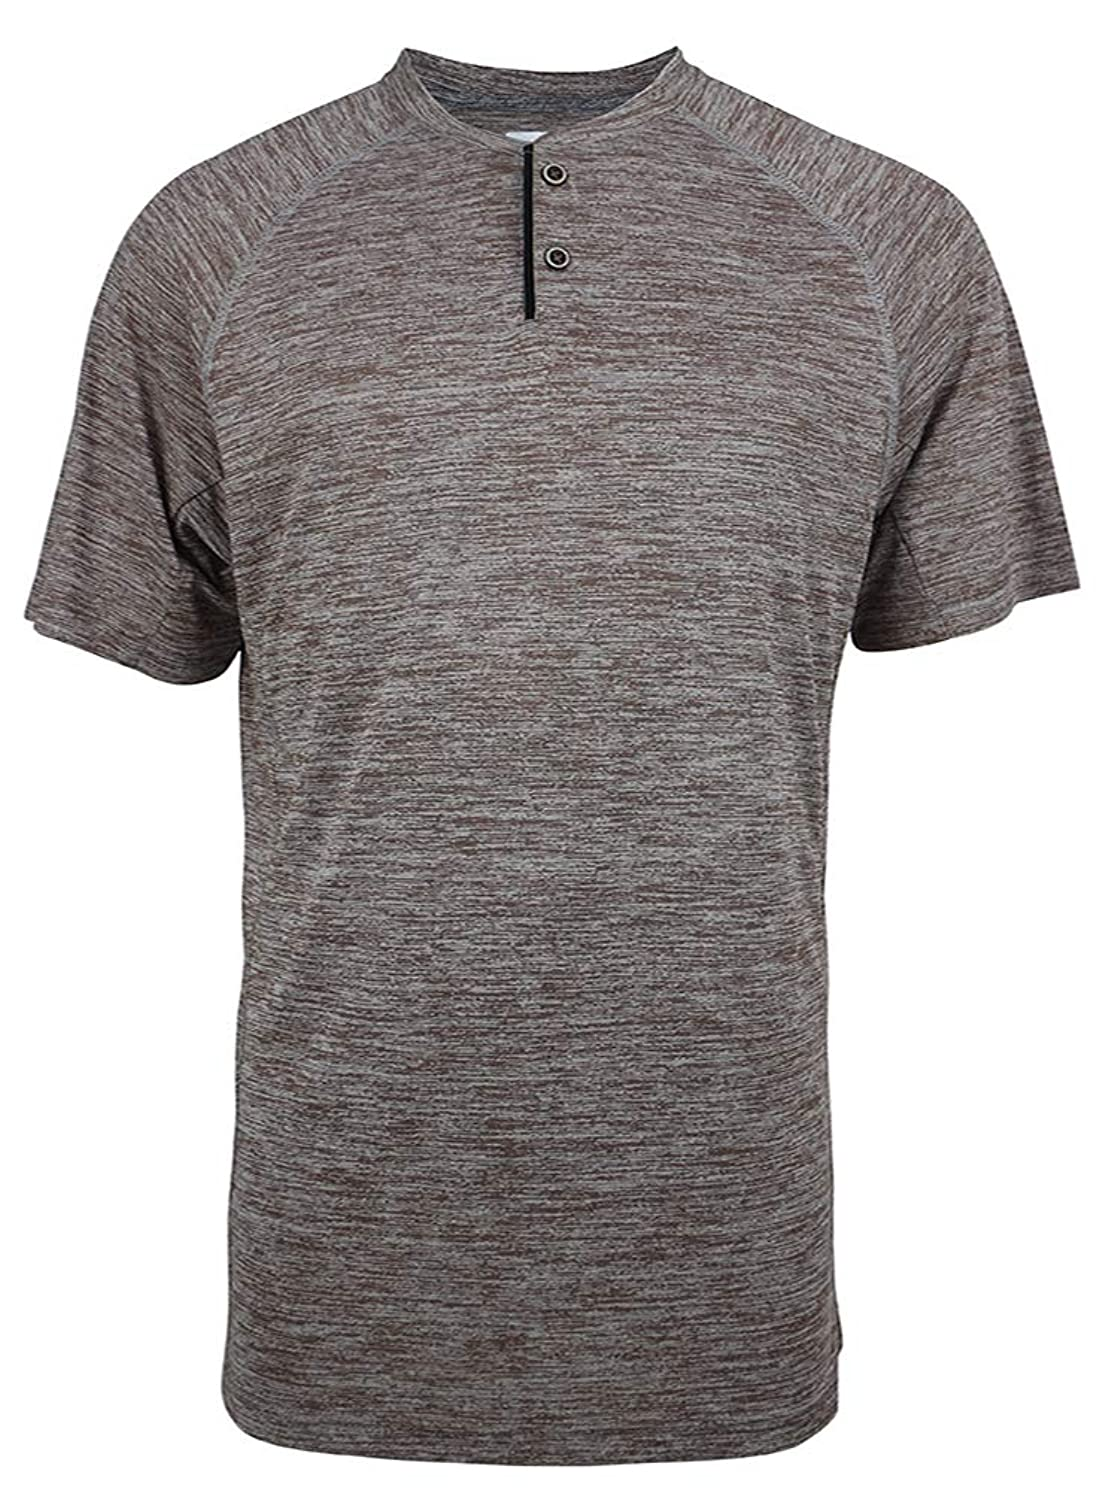 Men's Polo Classic Fit Quick Dry Henley T-Shirt Short Sleeve Tee Athletic T-Shirt